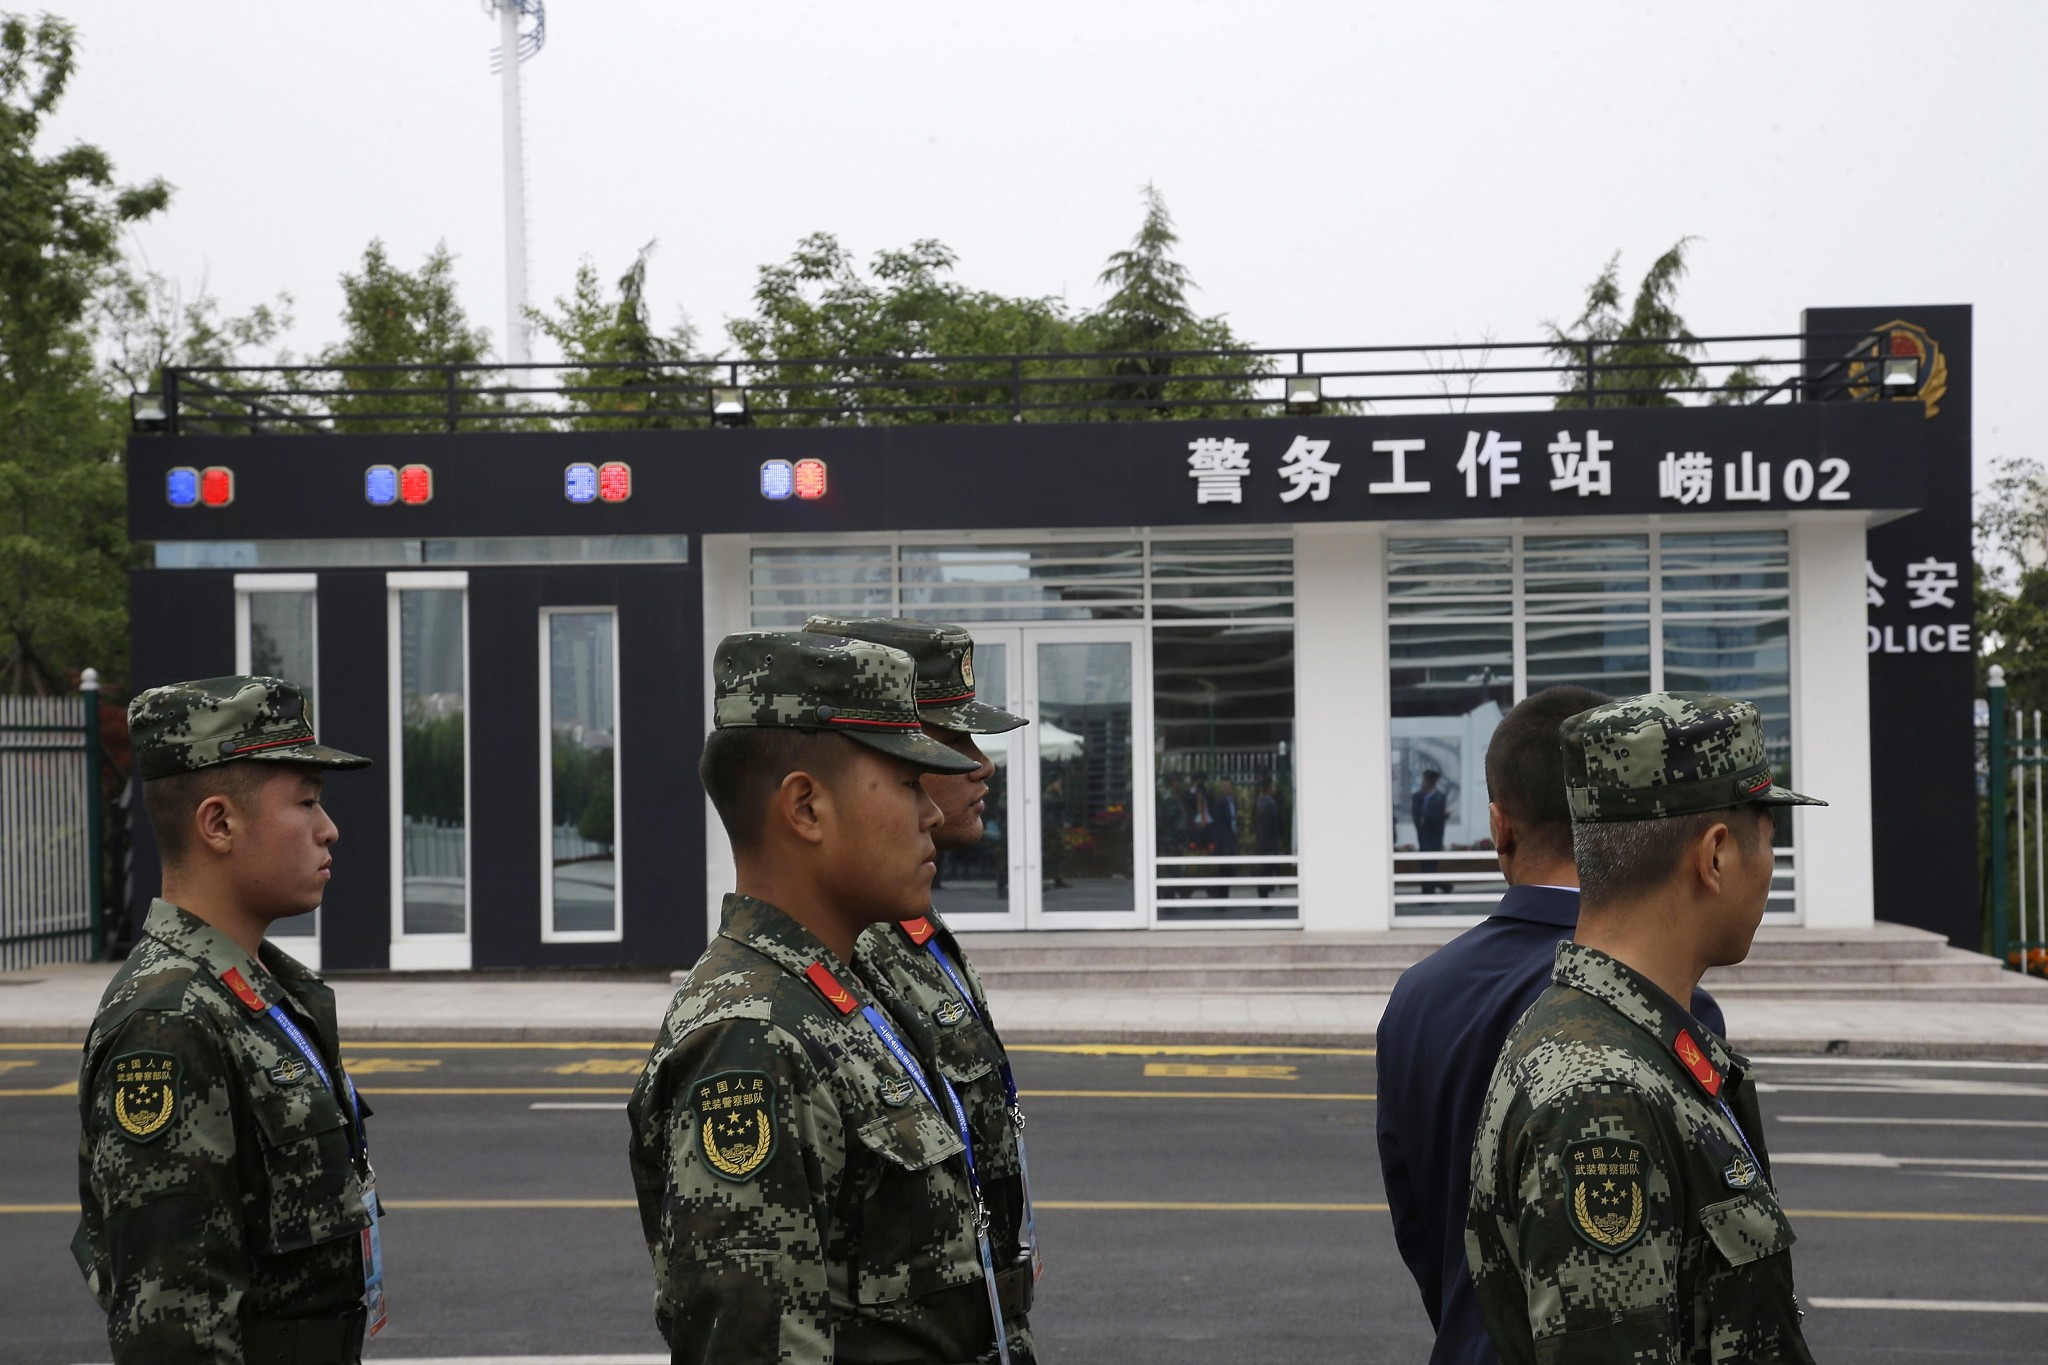 Soldiers stand guard near a police station at the Shanghai Cooperation Organization (SCO) Summit media center in Qingdao in eastern China's Shandong Province, Saturday, June 9, 2018. (AP Photo/Dake Kang)